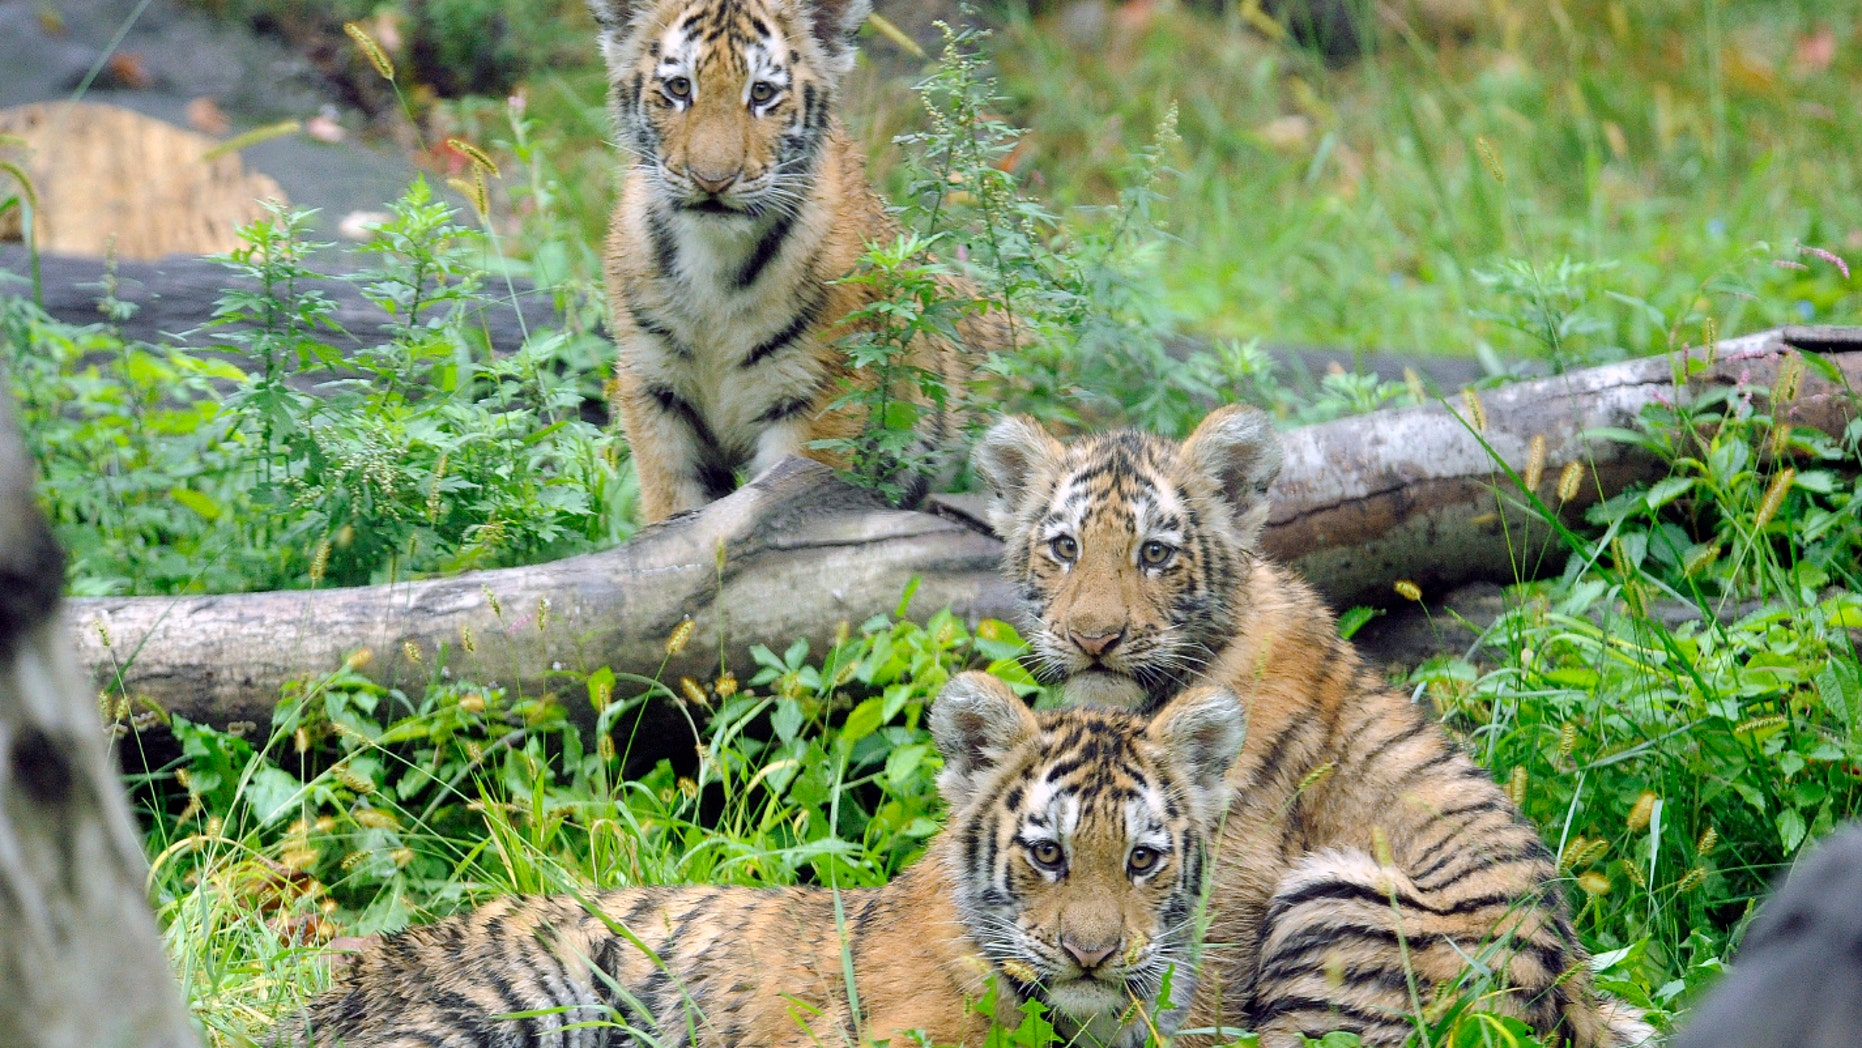 State legislators in both houses have passed a bill banning people from posing for photos while hugging, patting or otherwise touching tigers in New York state.